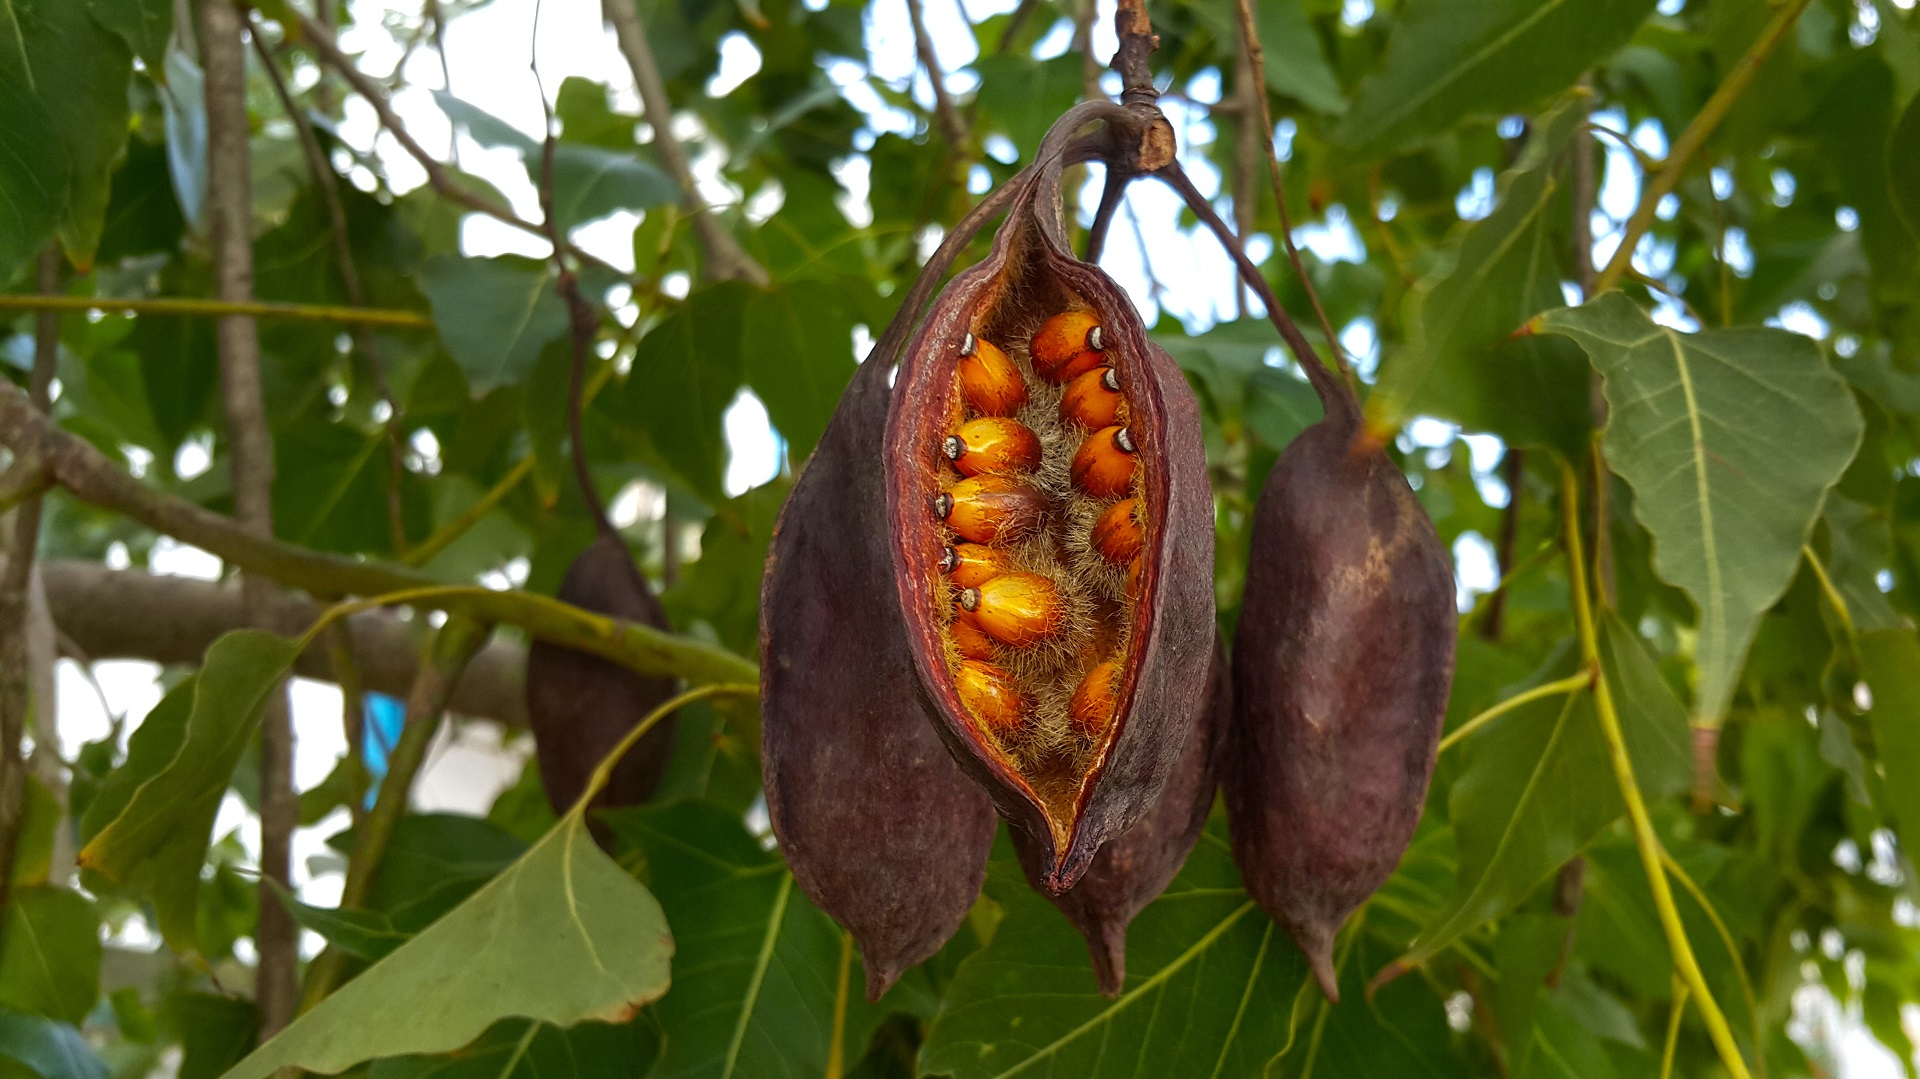 Seed pod from a black kurrajong tree that has opened to show orange seeds